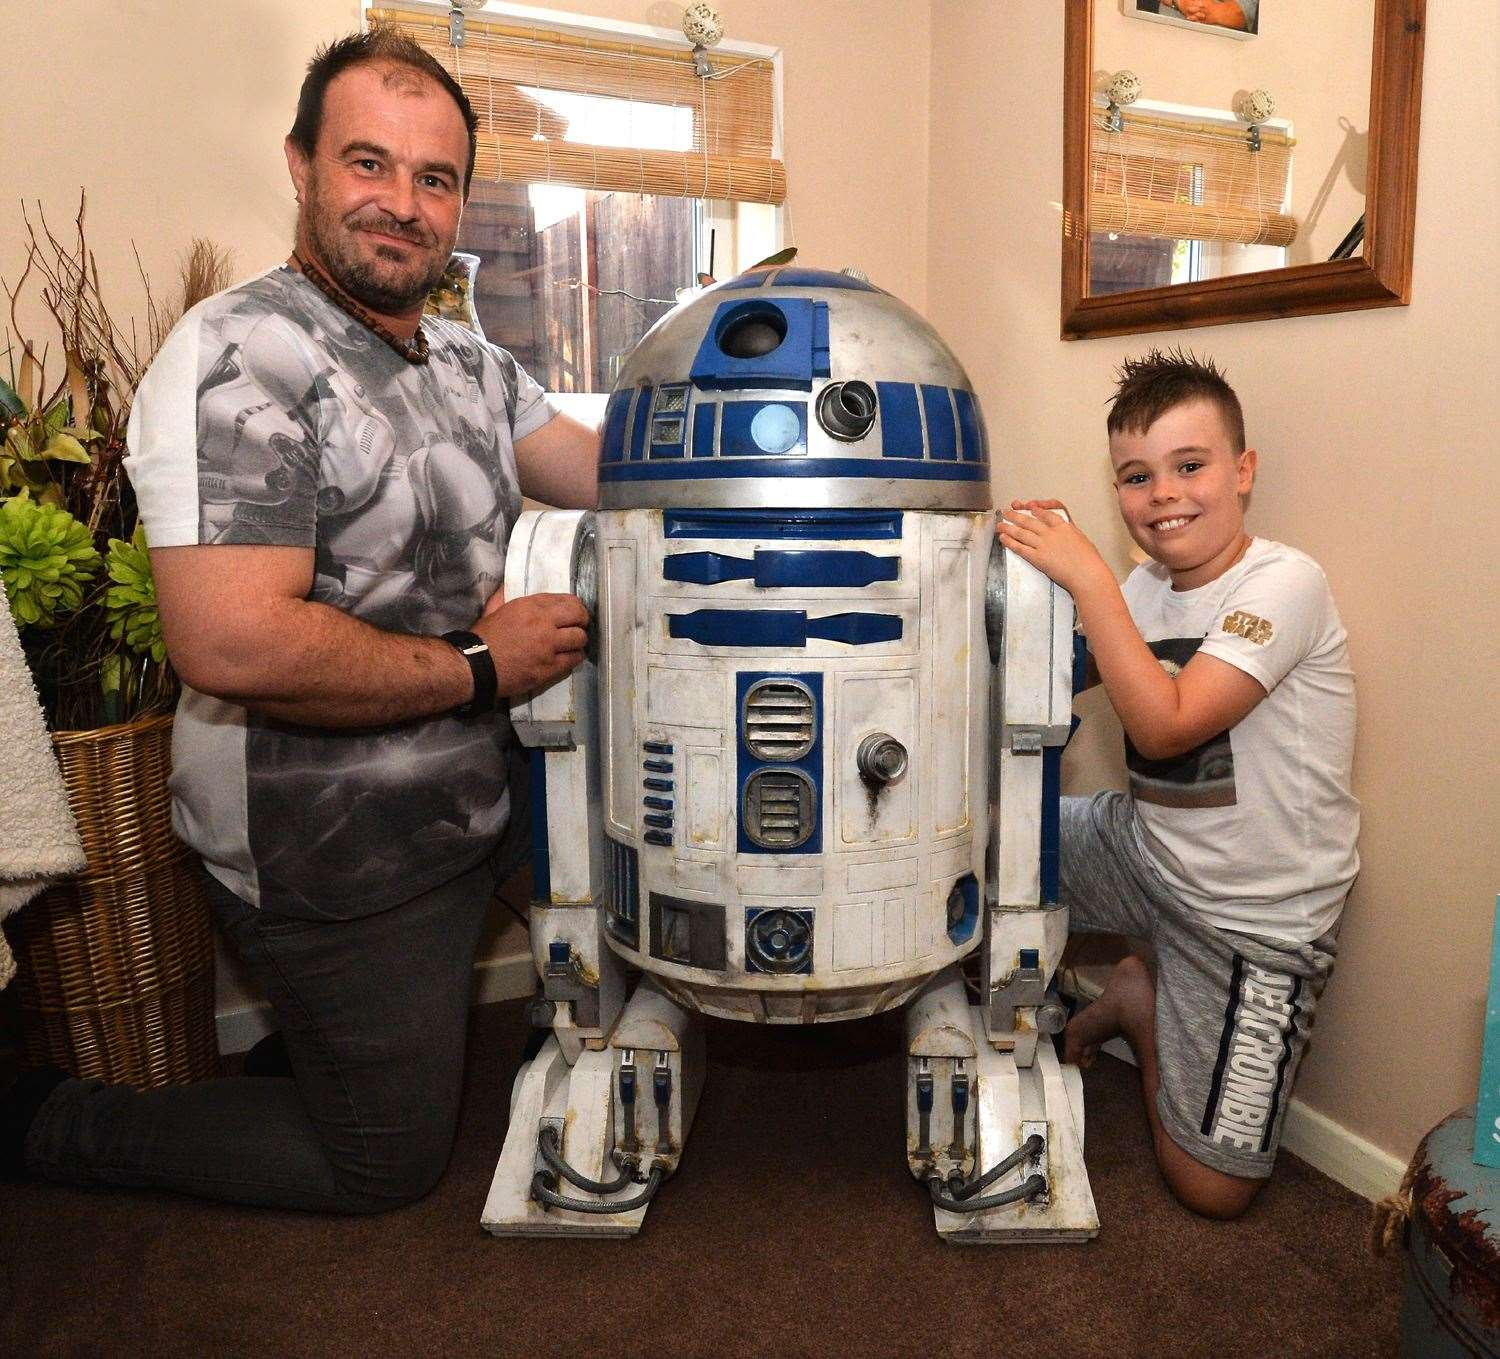 Home from home for R2-D2 with his creator Mark Gibson and his eight-year-old son Rocko.